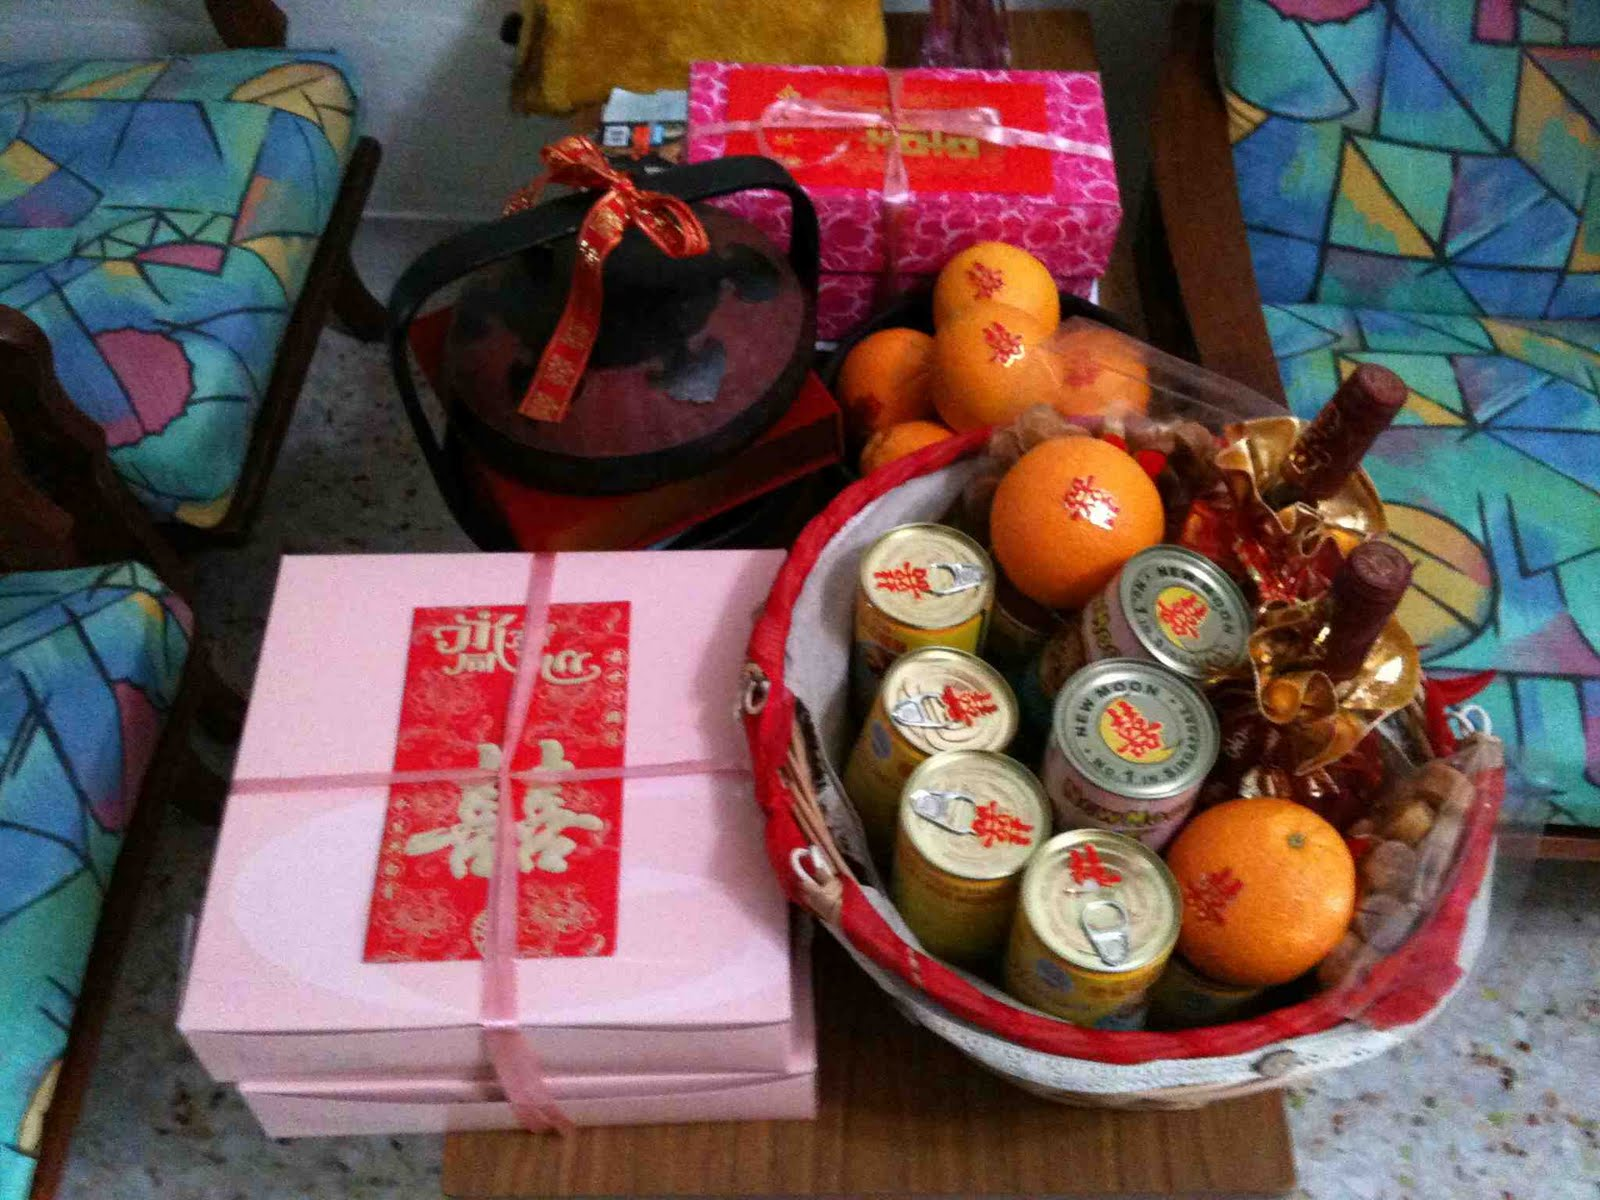 Chinese Wedding Gift For Groom : Brides return gift to show that the groom has been too generous: